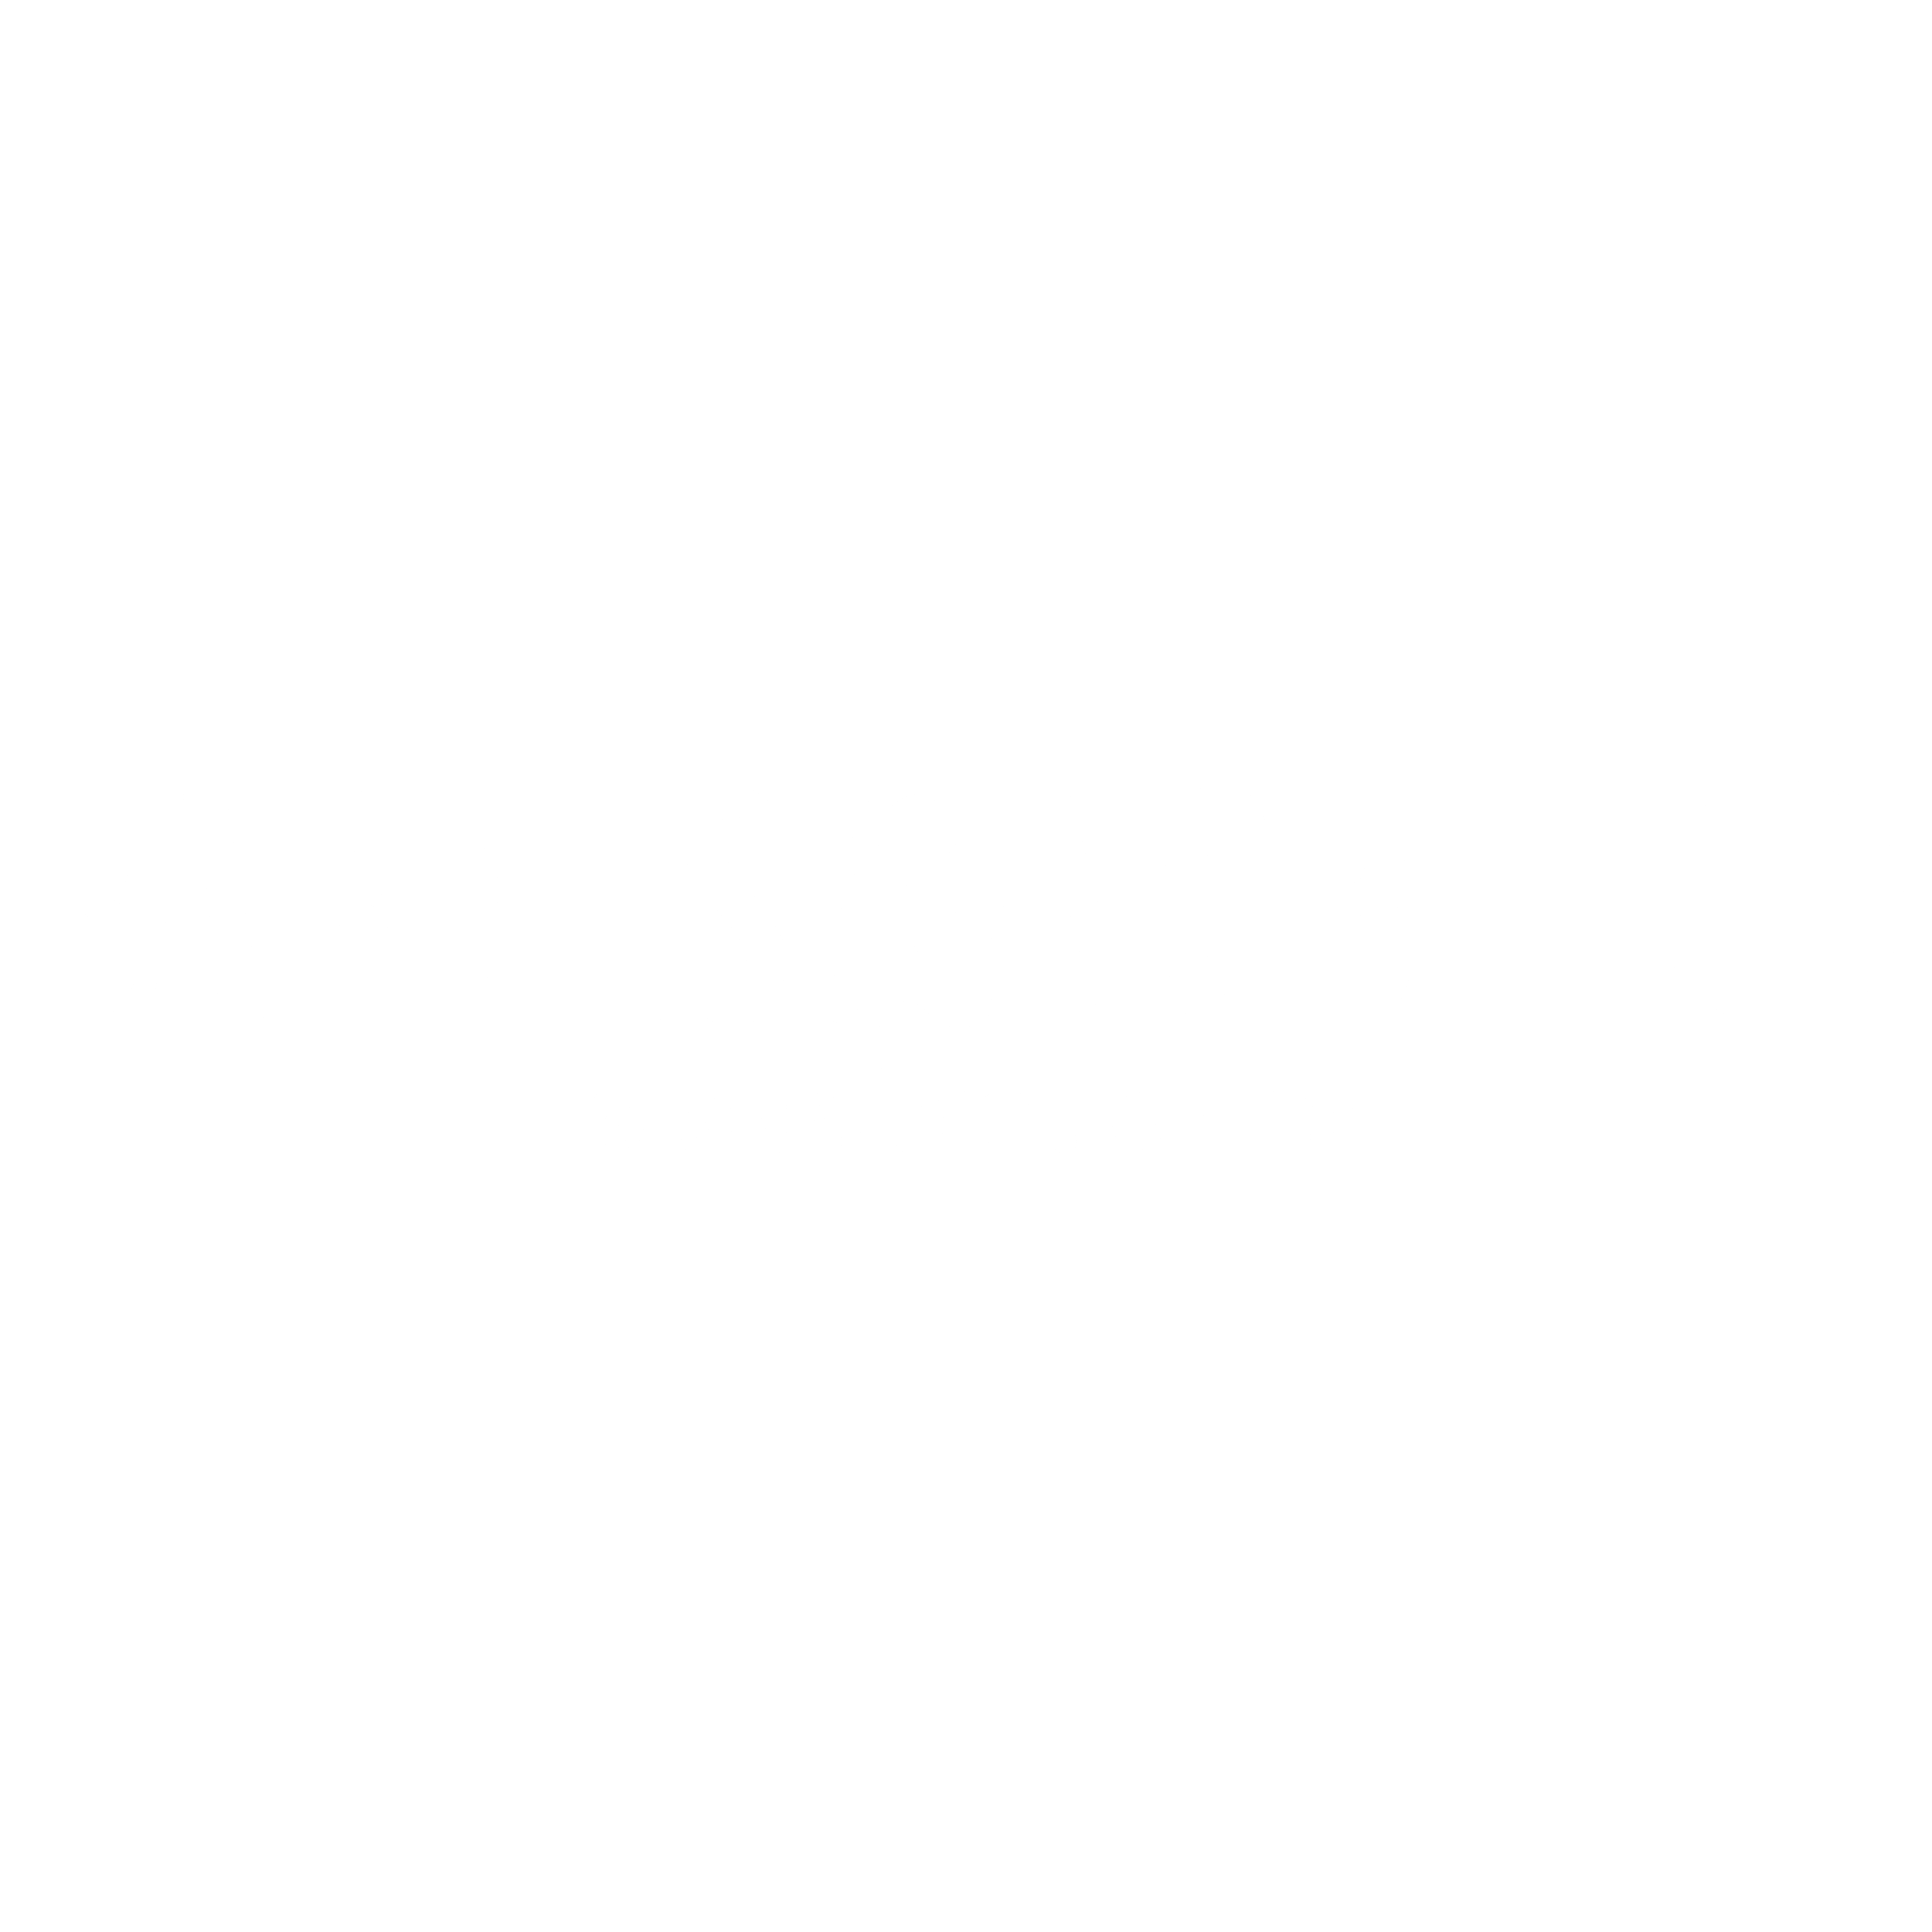 Barnes & Noble 02 Logo PNG Transparent & SVG Vector.